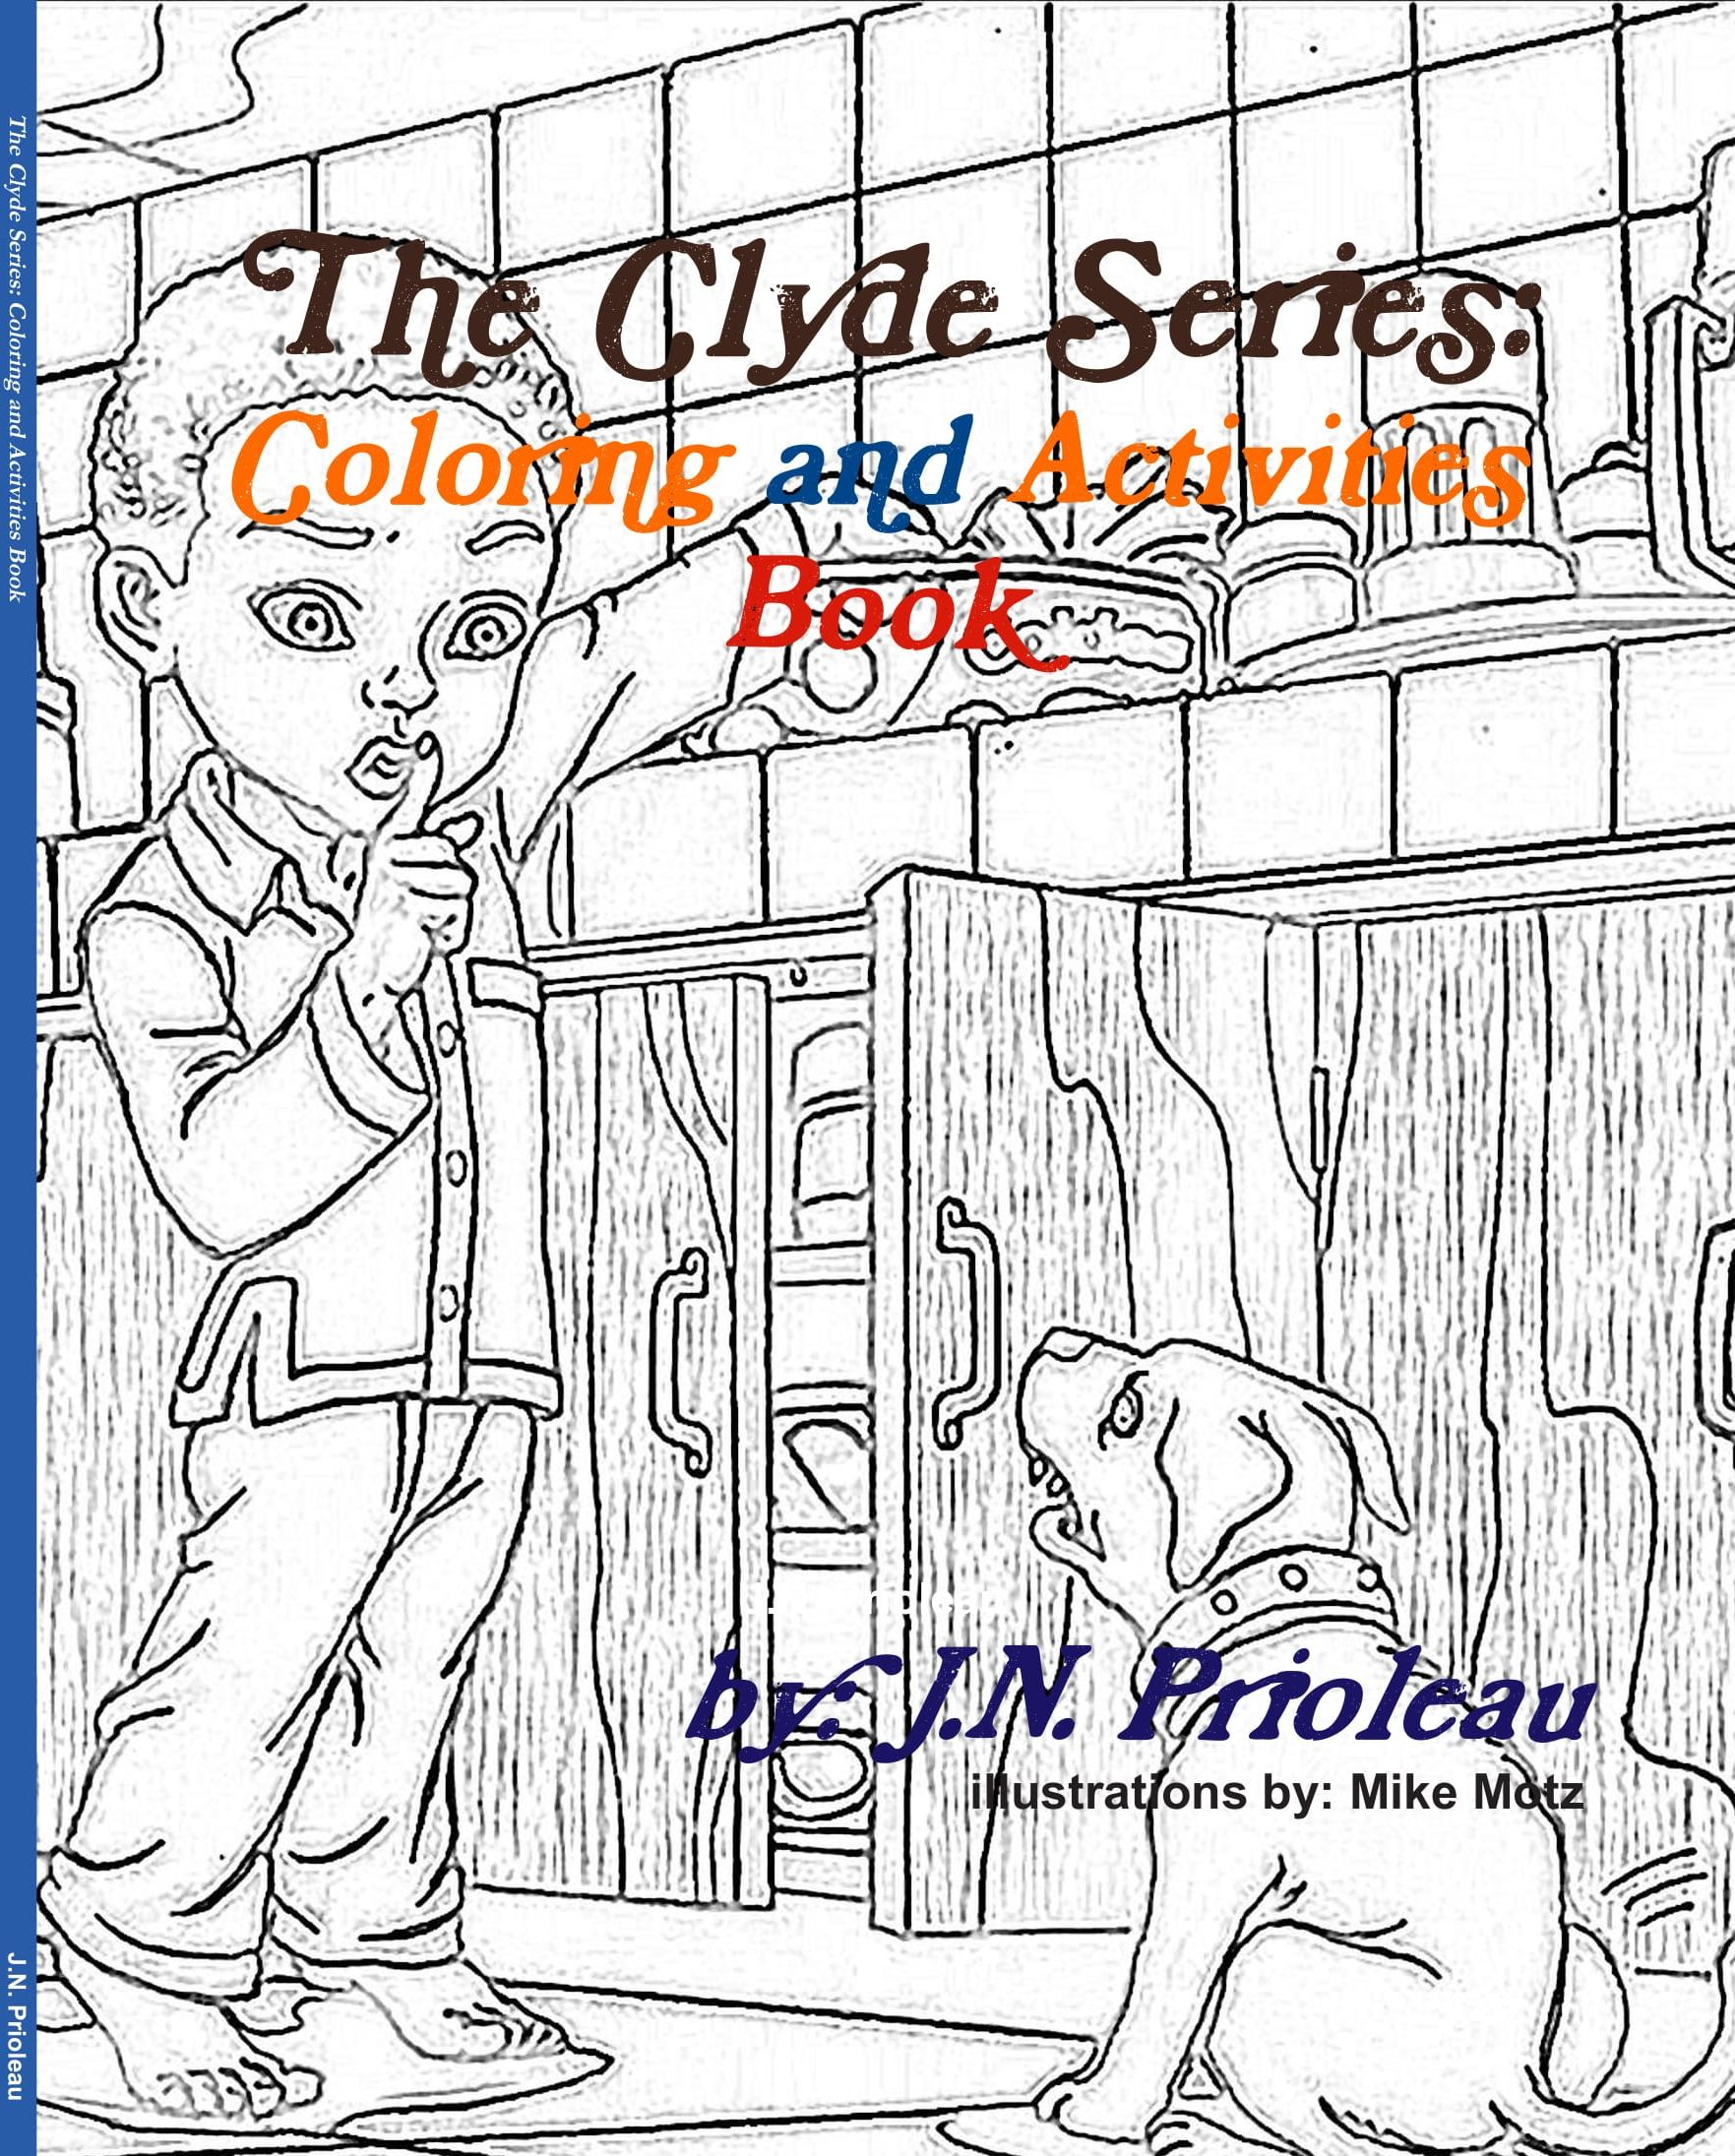 The Clyde Series: Coloring and Activities Book